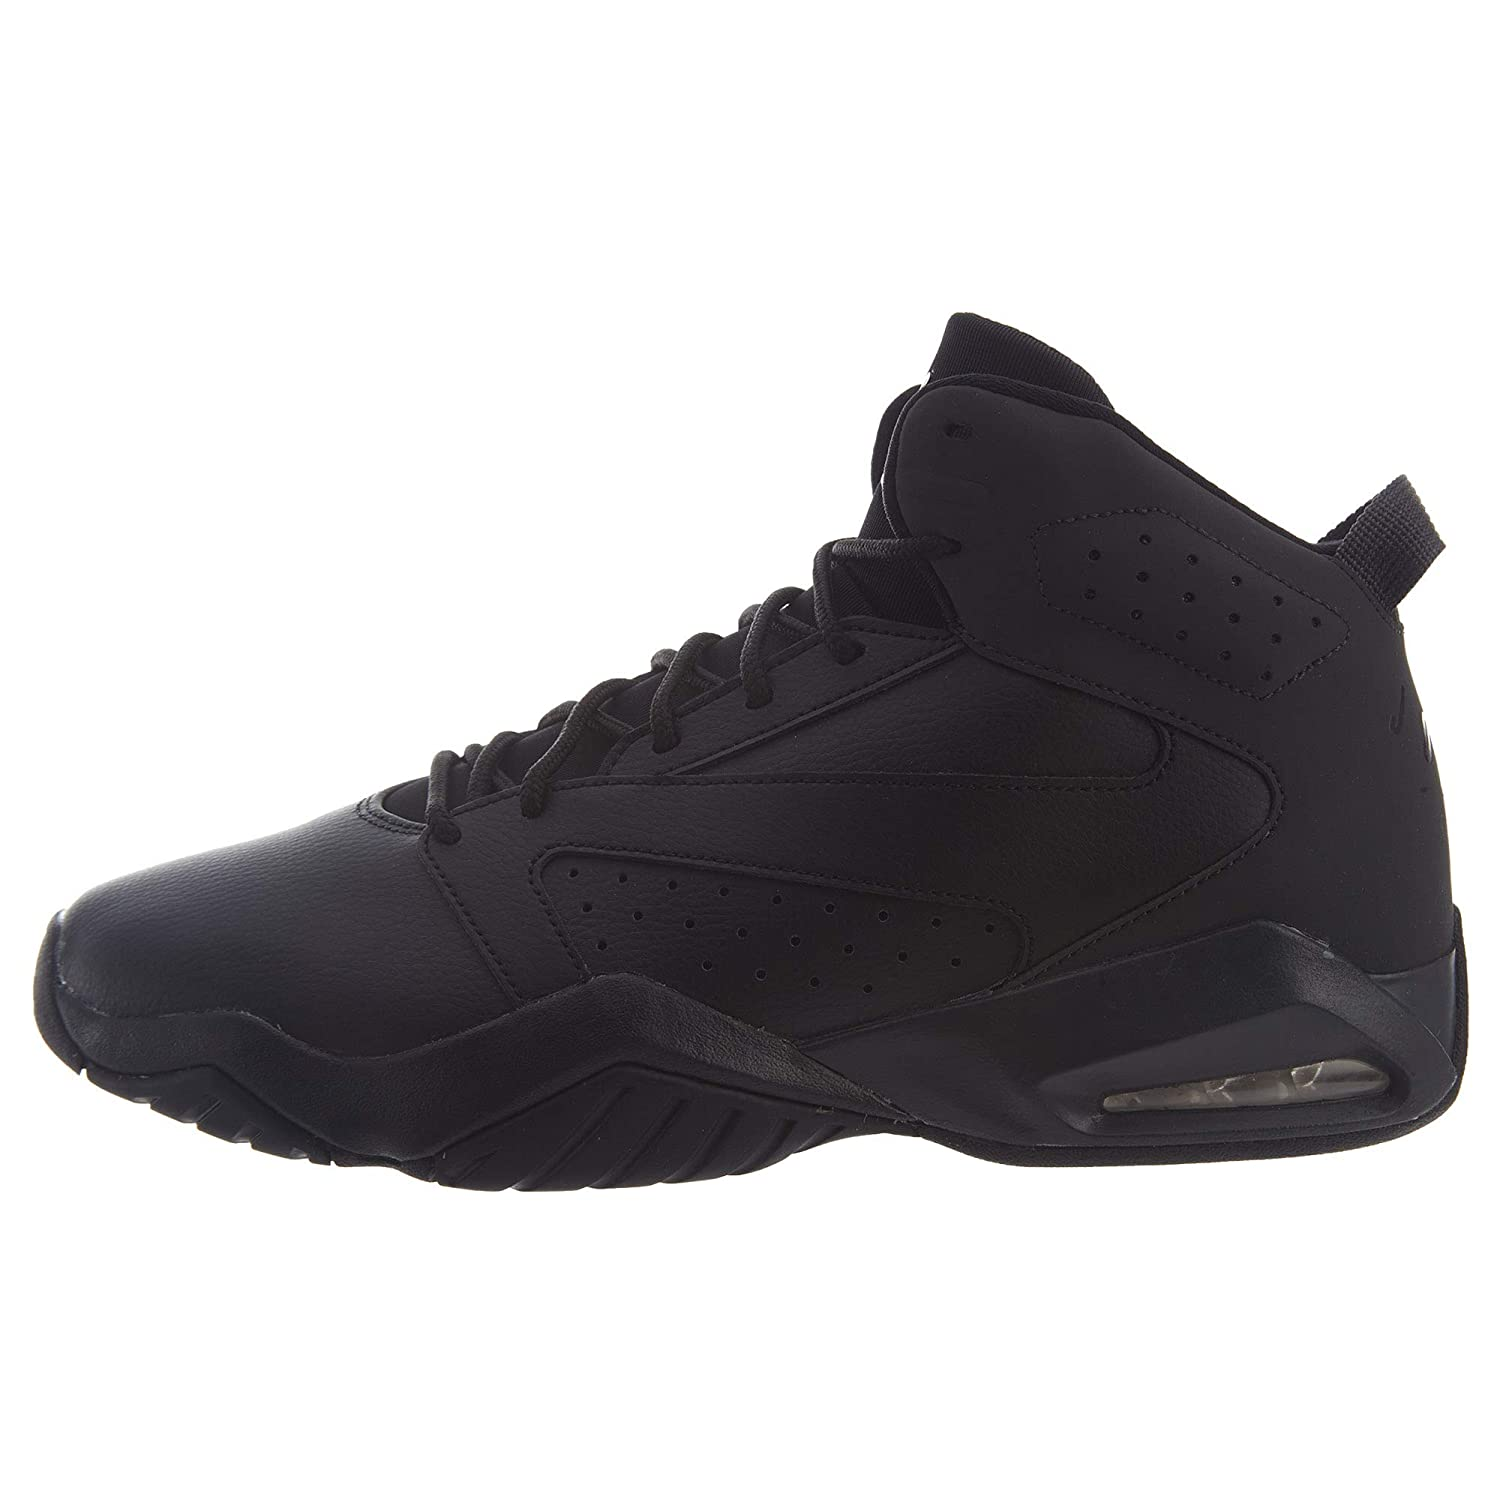 bd3102e0786 Amazon.com | Jordan Nike Mens Lift Off Leather Synthetic Trainers |  Basketball